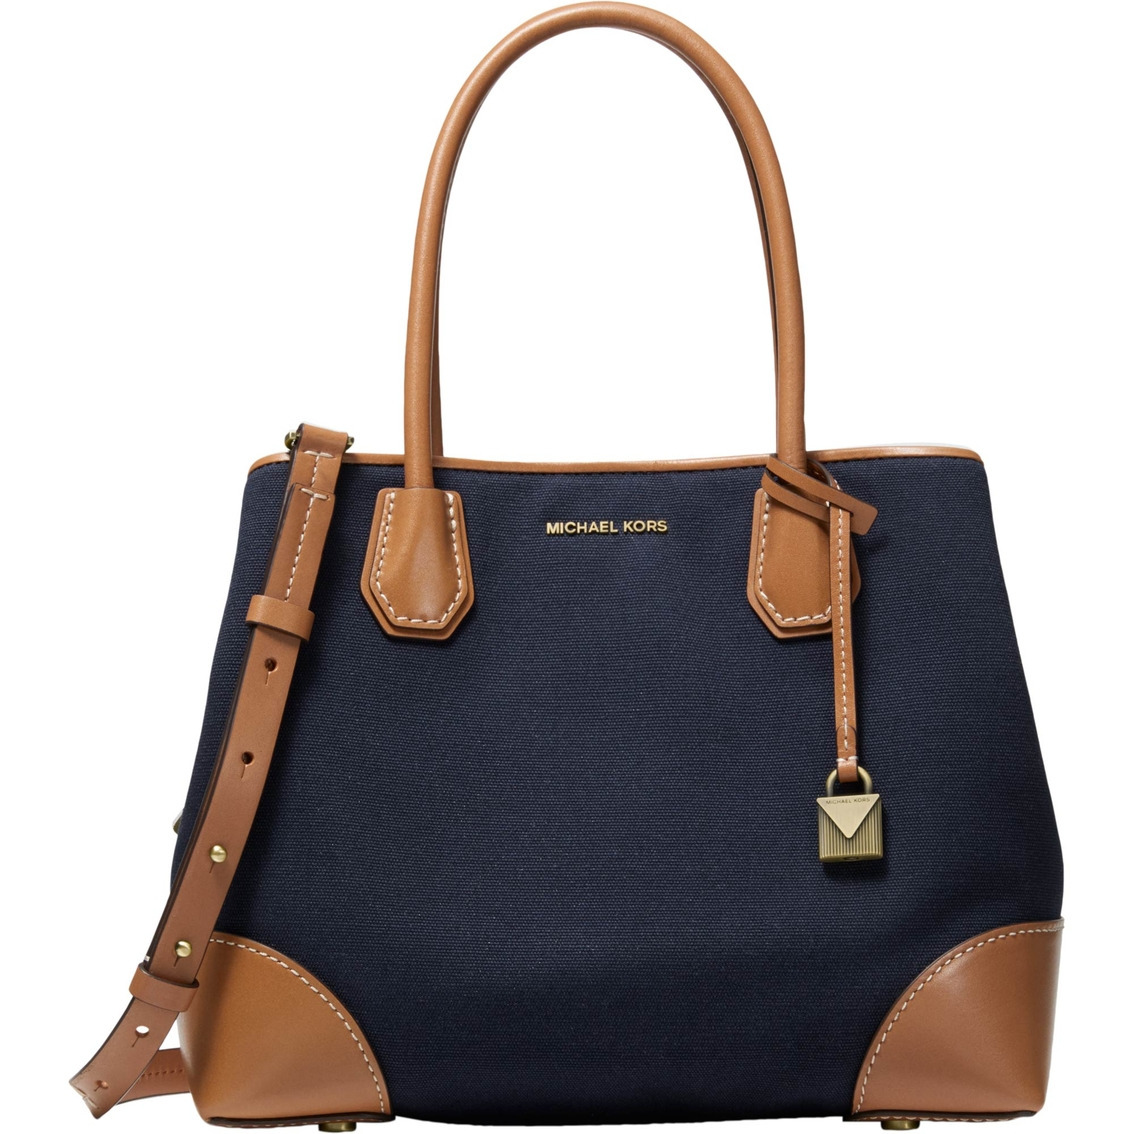 00bd99fea6f3 Michael Kors Mercer Canvas Tote | Totes & Shoppers | Handbags ...